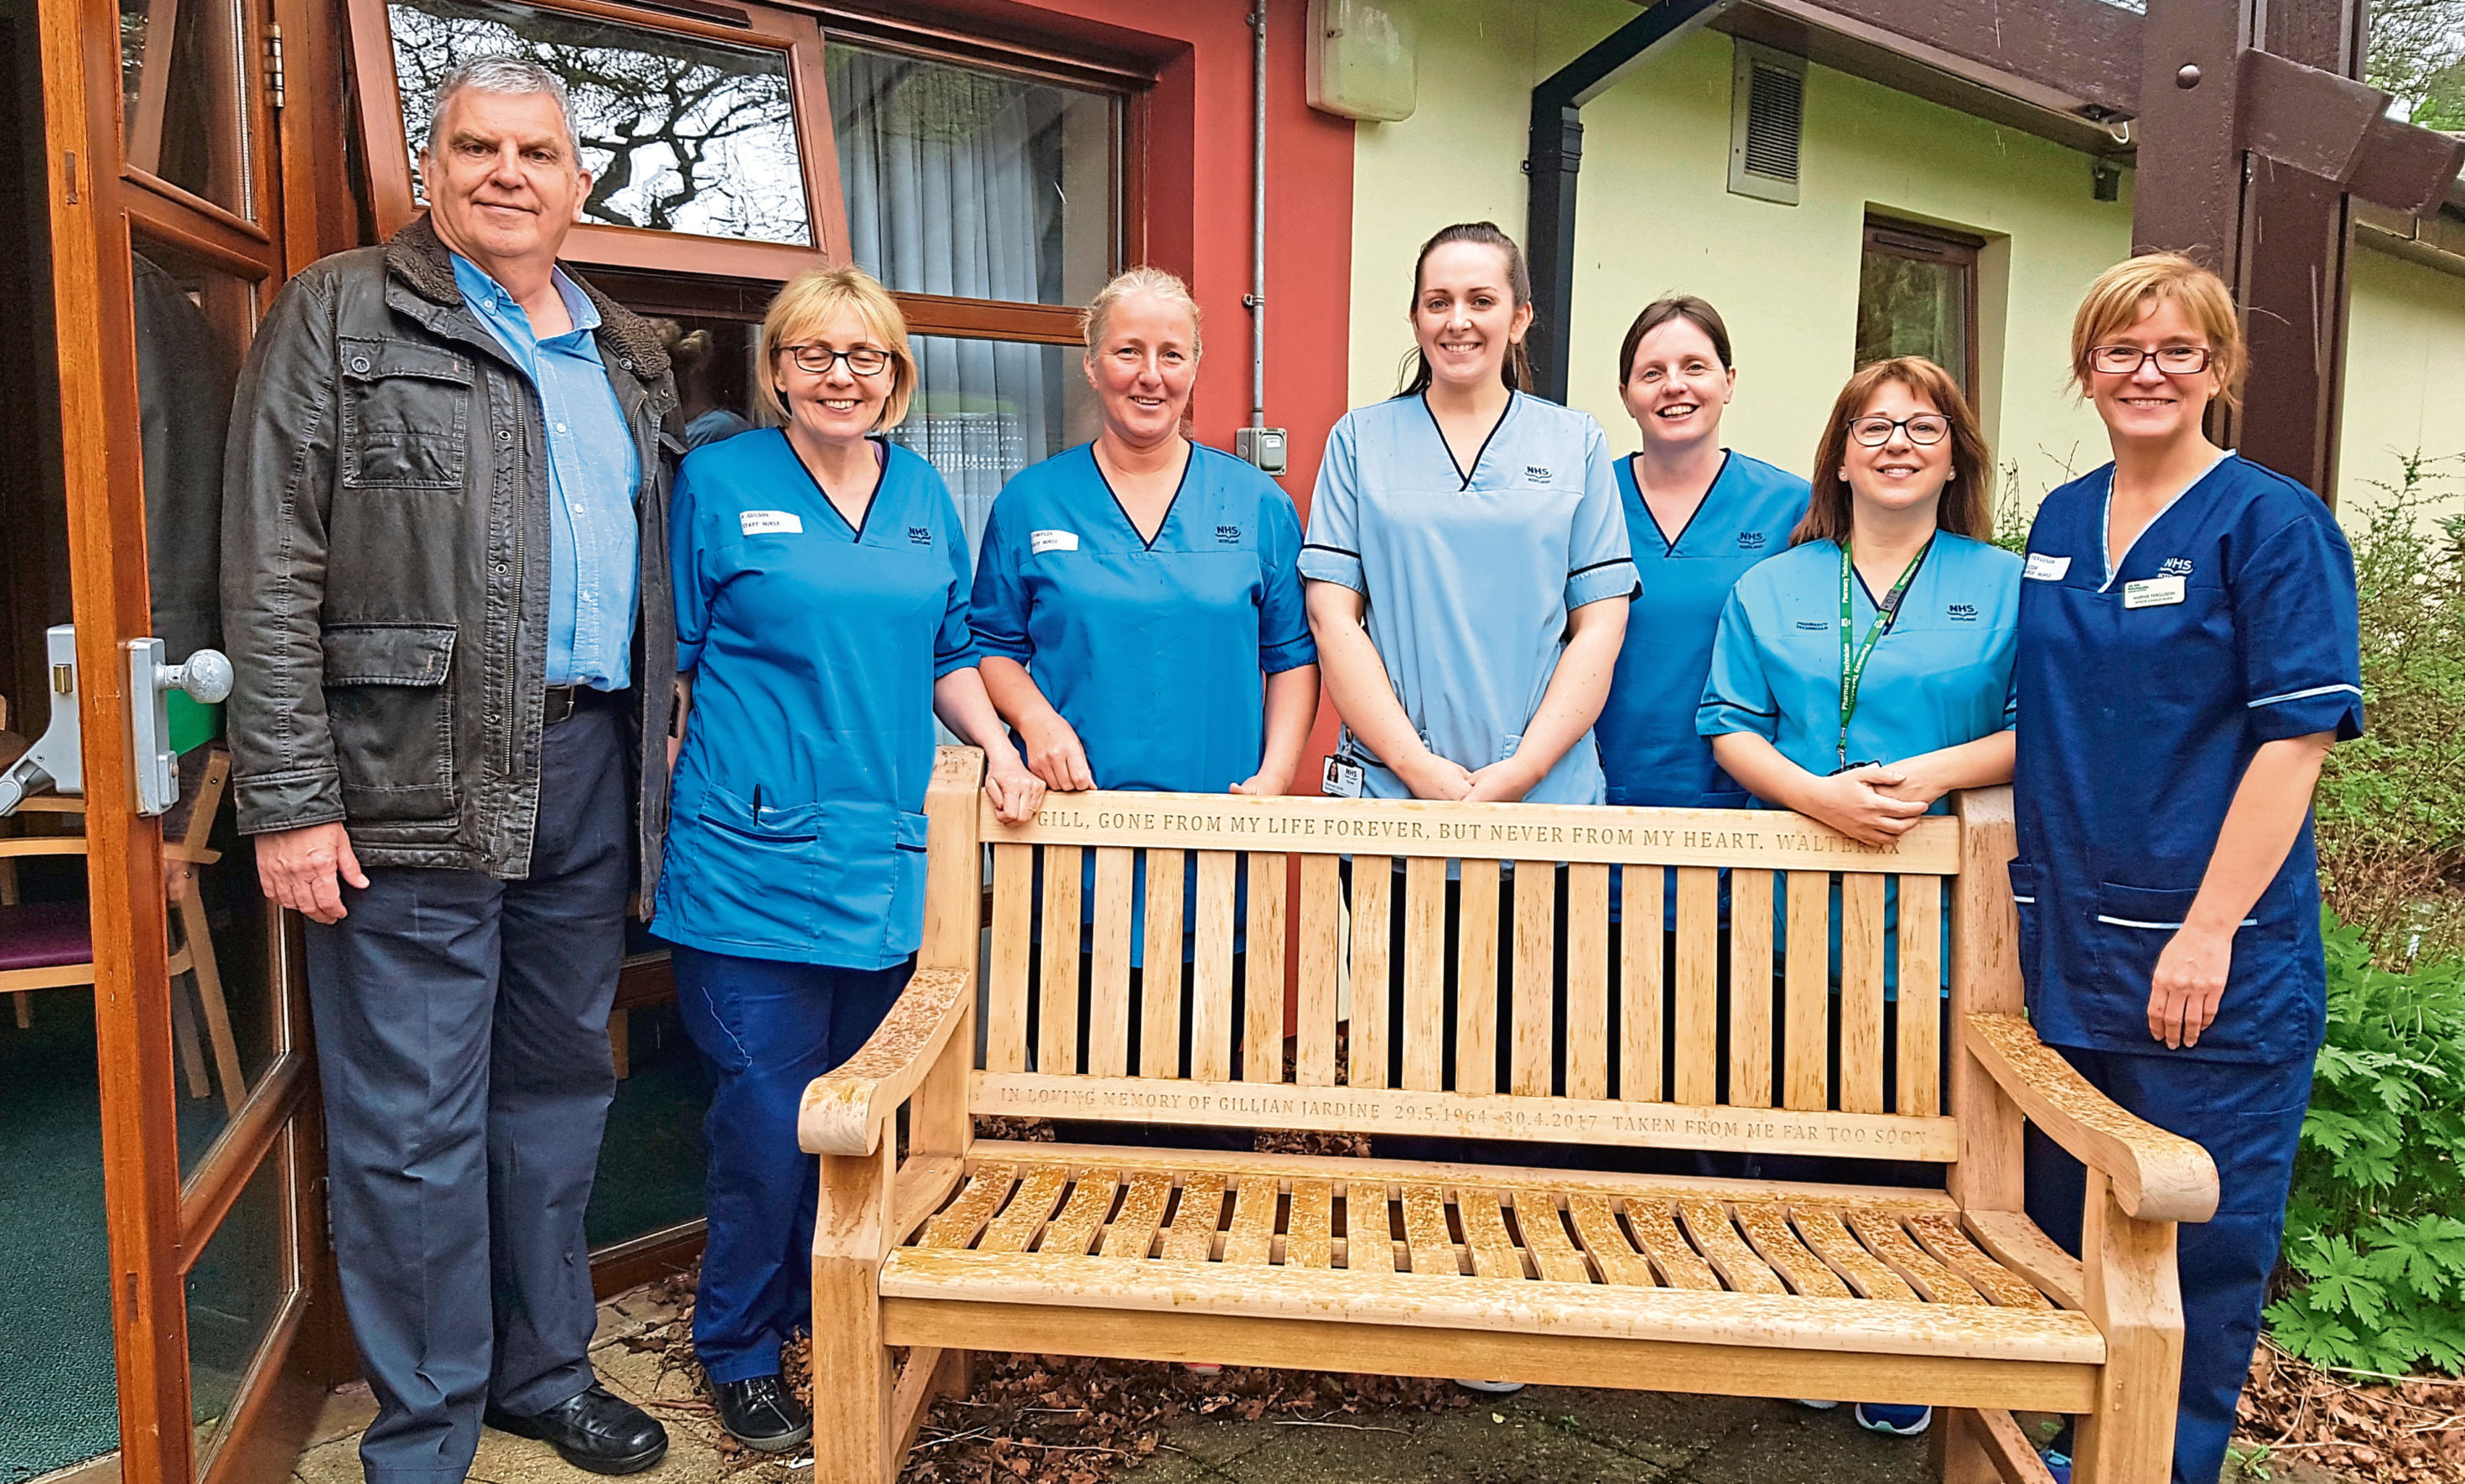 n Pictured, from left, are Walter, staff nurses Audrey Gulson and Dawn Chaplin, rehab assistant Shannen Smith, staff nurse Fiona Foxon, pharmacy technician Teresa Souter and Marnie.